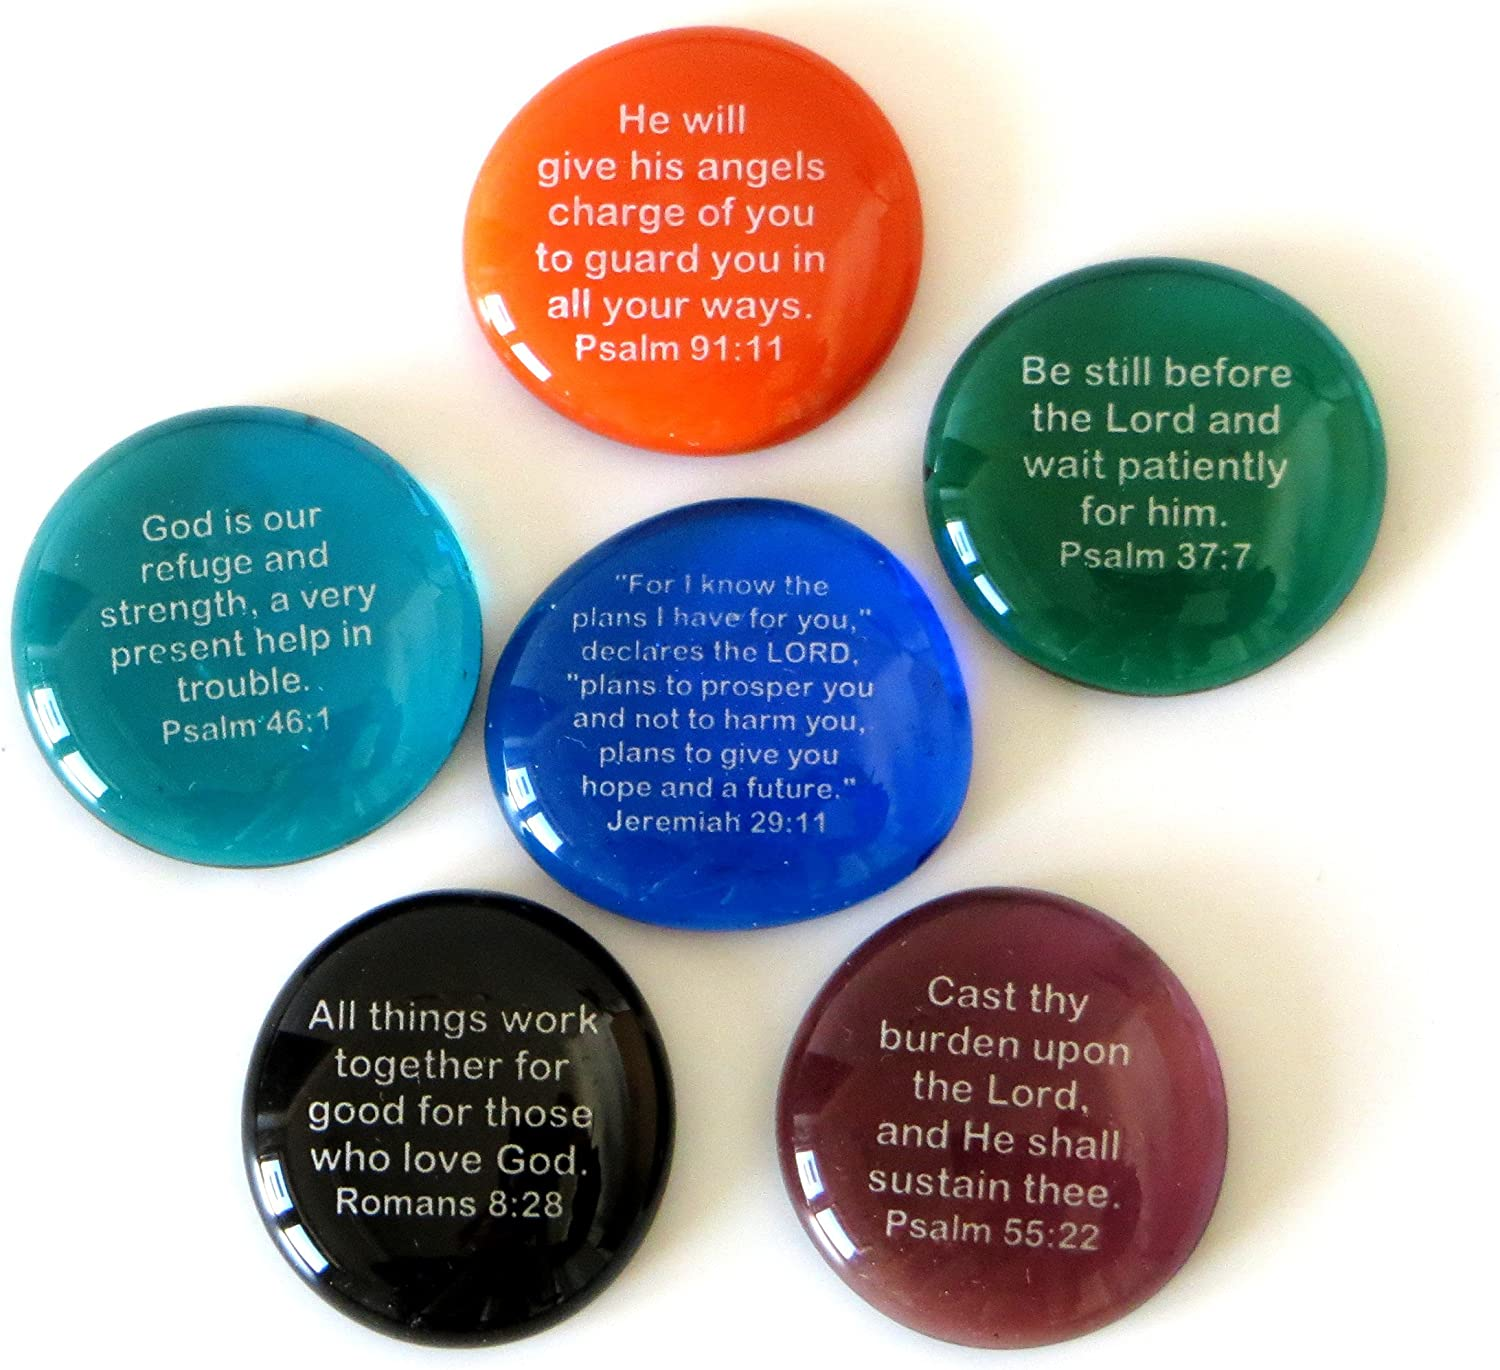 Lifeforce Glass Scripture Glass Stones,Six of Your Favorite Inspiring Bible Verses on Translucent and Opaque Rocks Set II